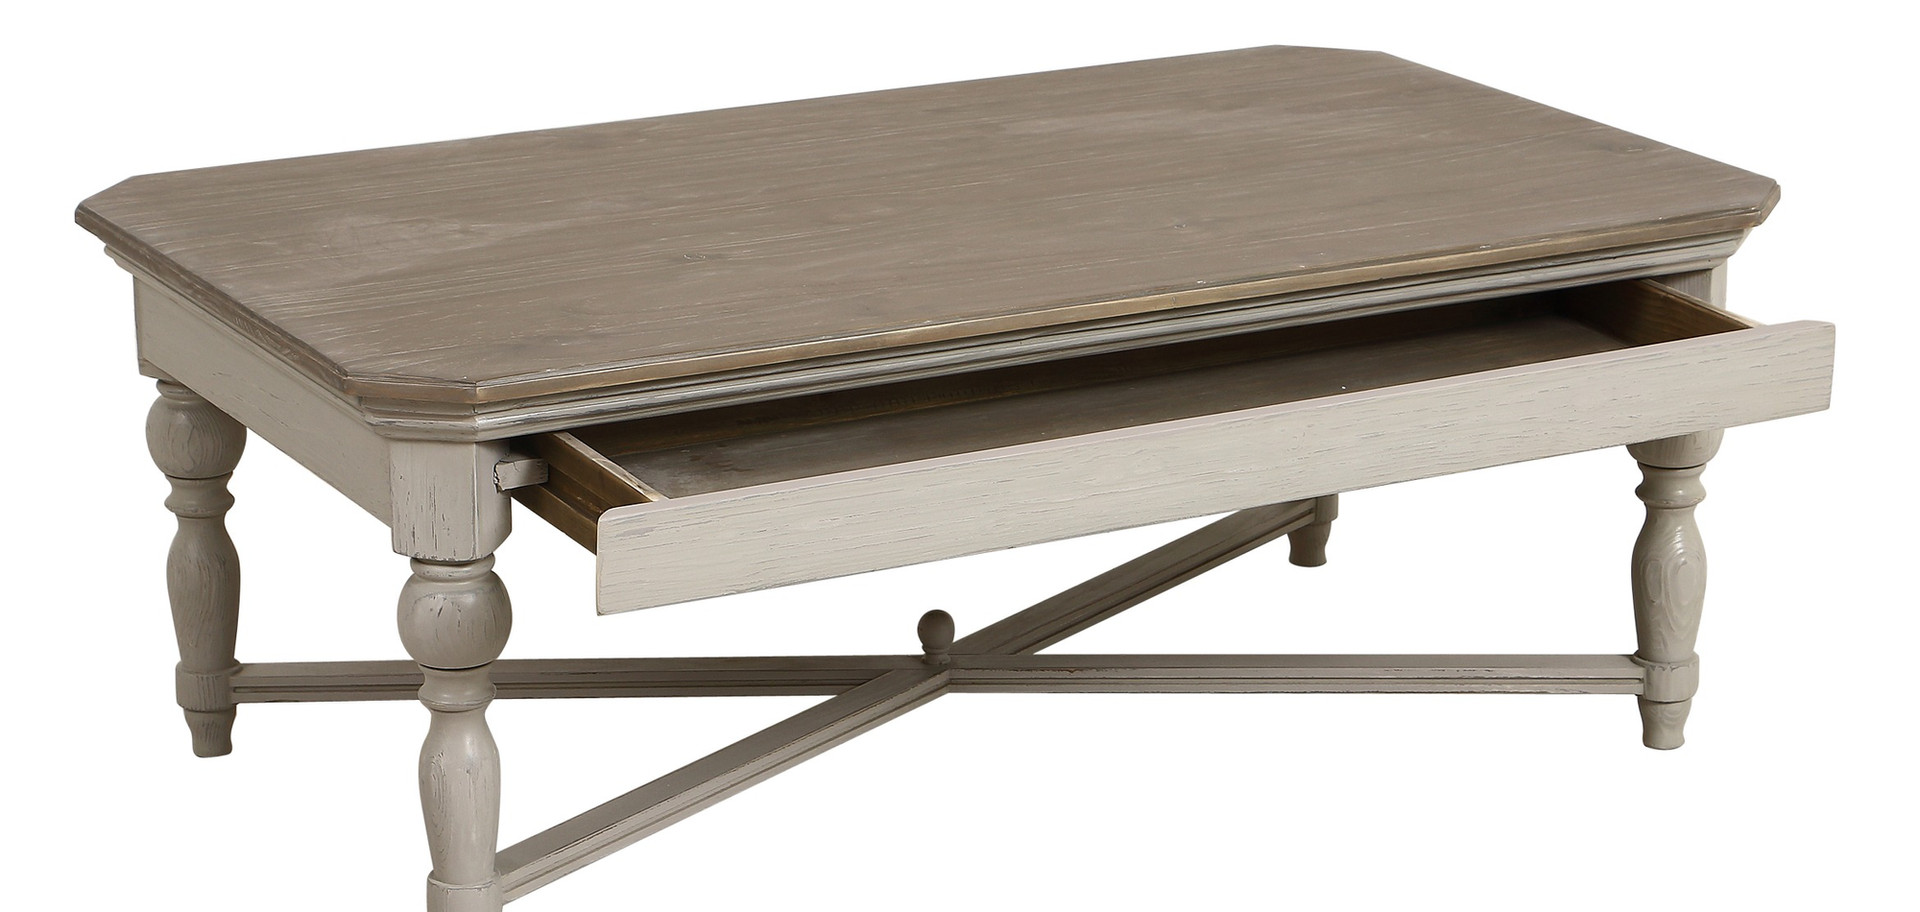 Coffee table with full length drawer.jpg